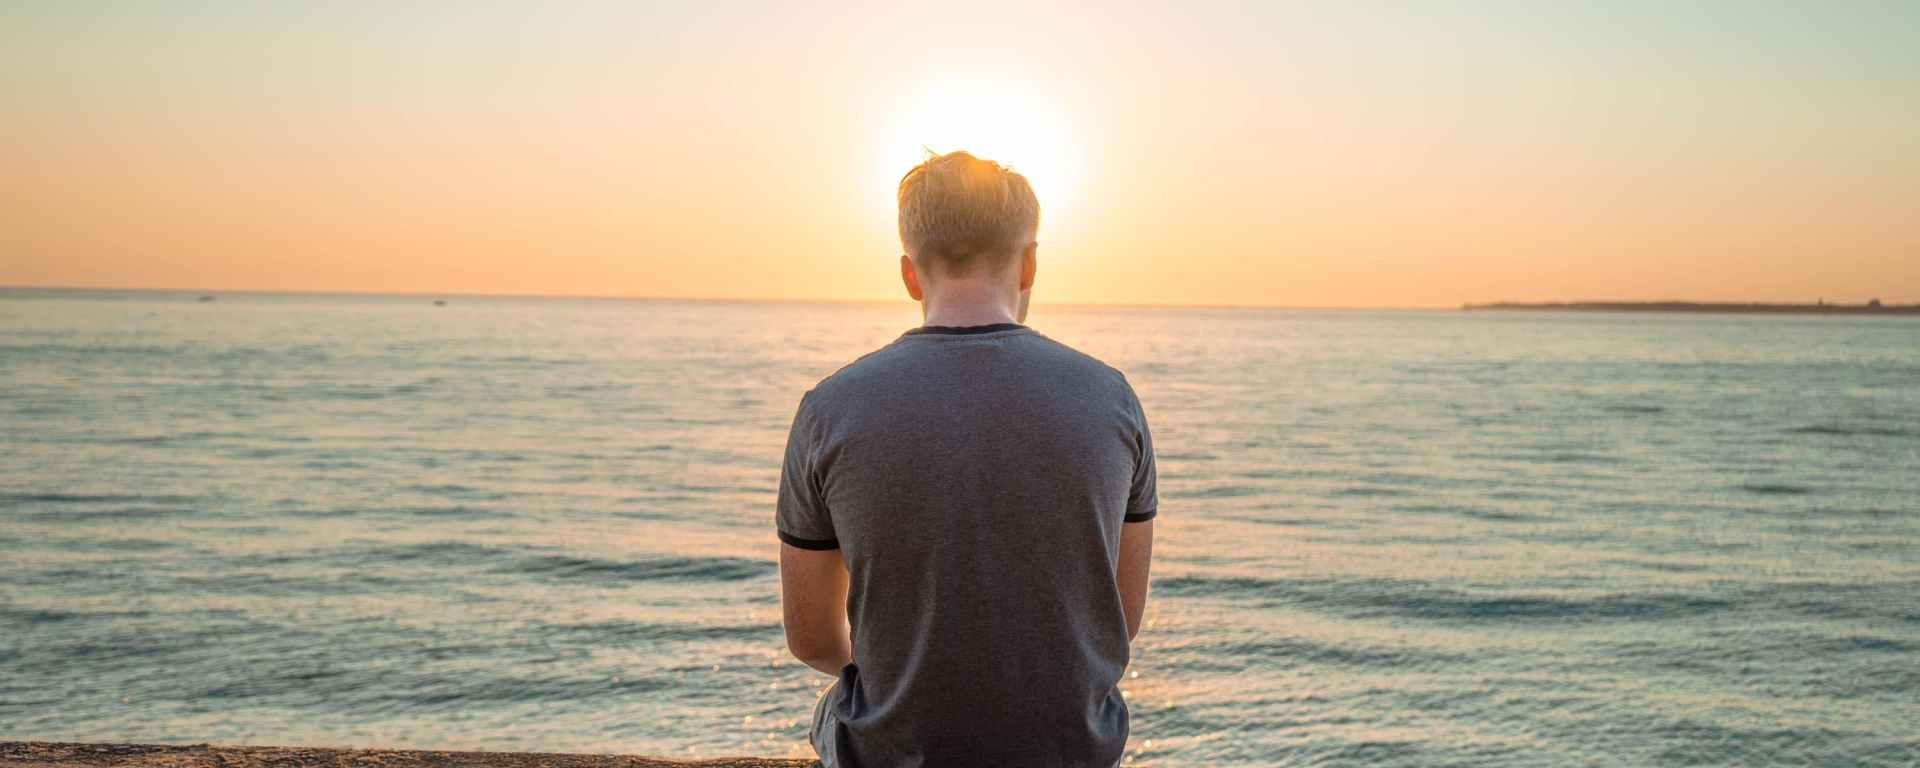 7 Things You Can Do to Start Growing Closer to God